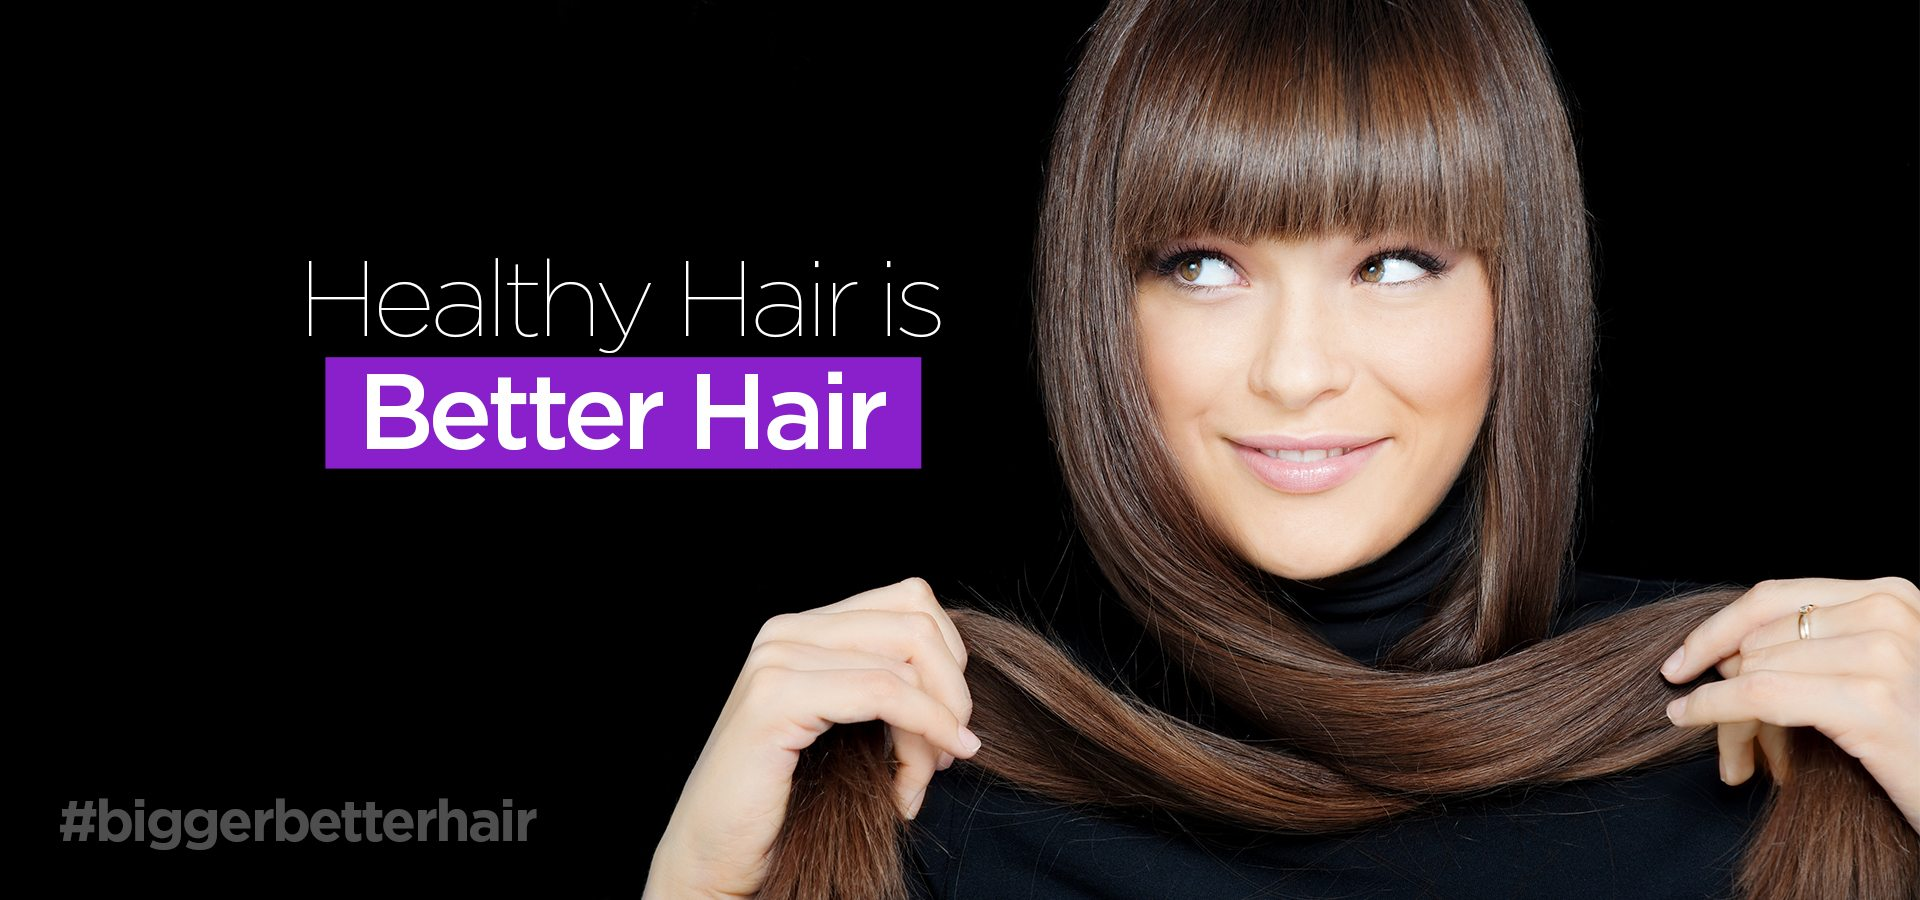 Slider-Image-Healthy-Hair-is-Better-Hair-1-3